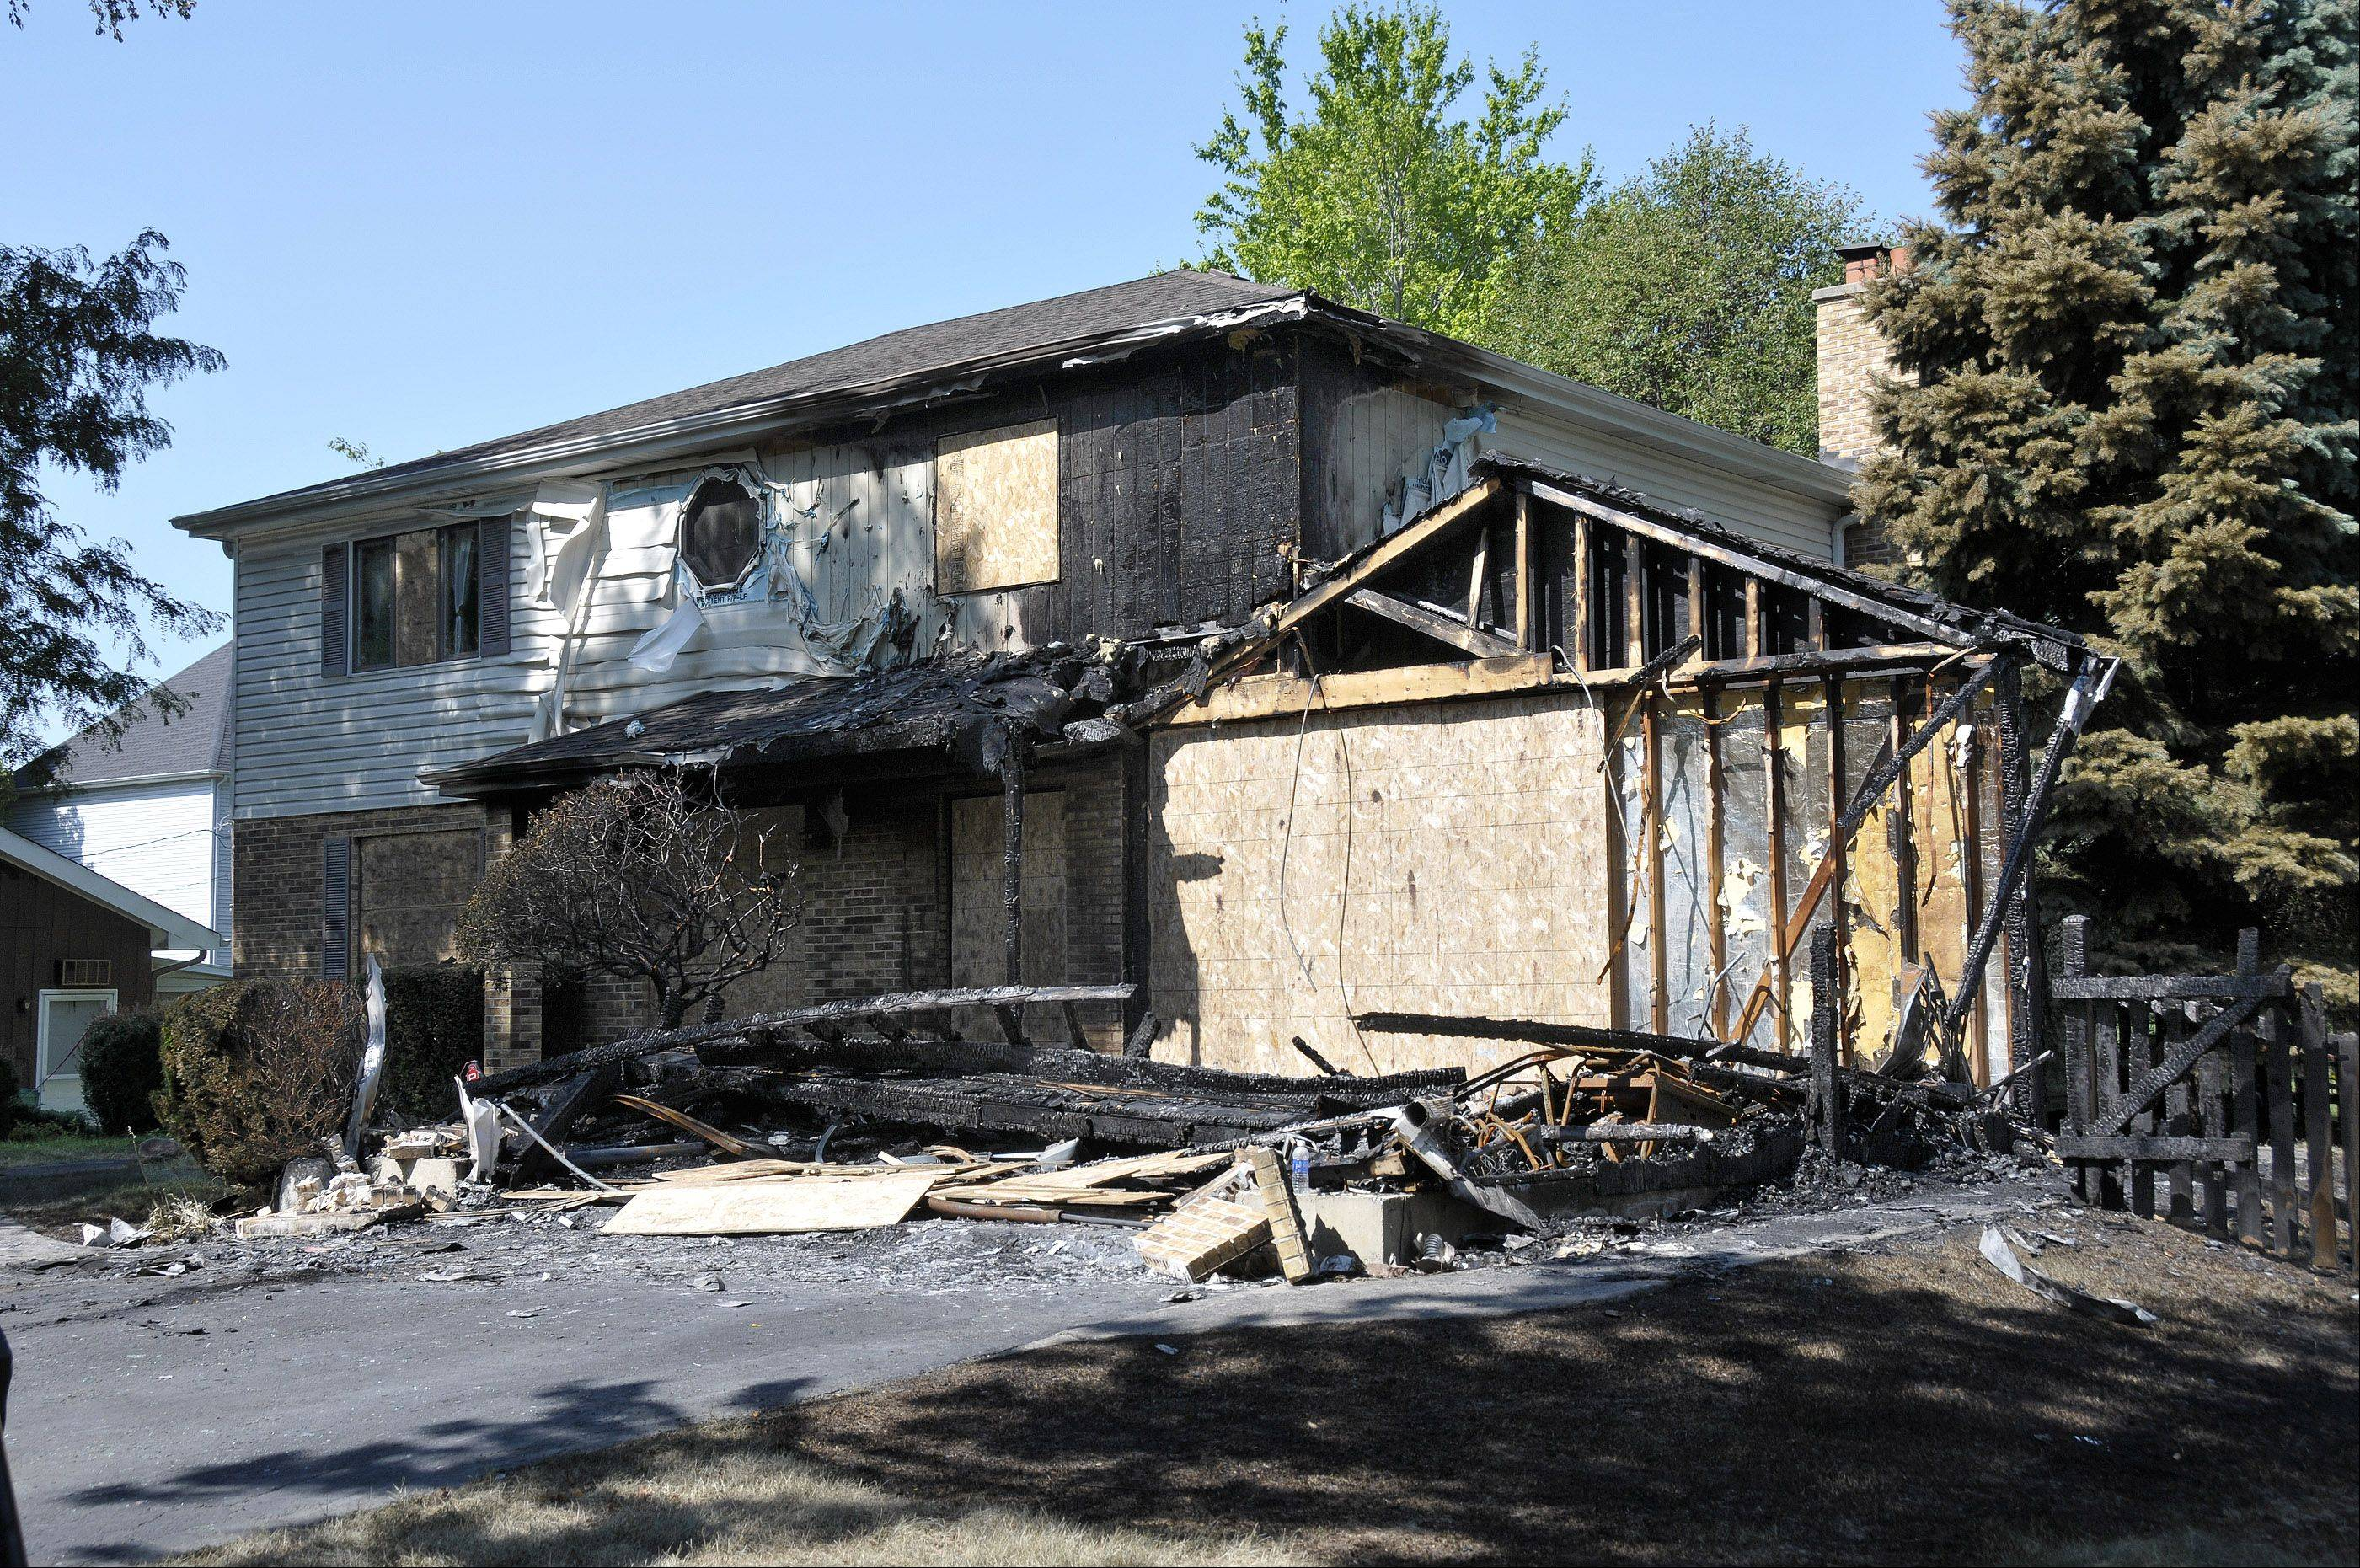 Prosecutors say an enraged Todd Mandoline set fire to a car in the driveway of this home in Lombard. The fire spread to the house, killing 24-year-old Paula Morgan and severely injuring another person. Mandoline is charged with murder.